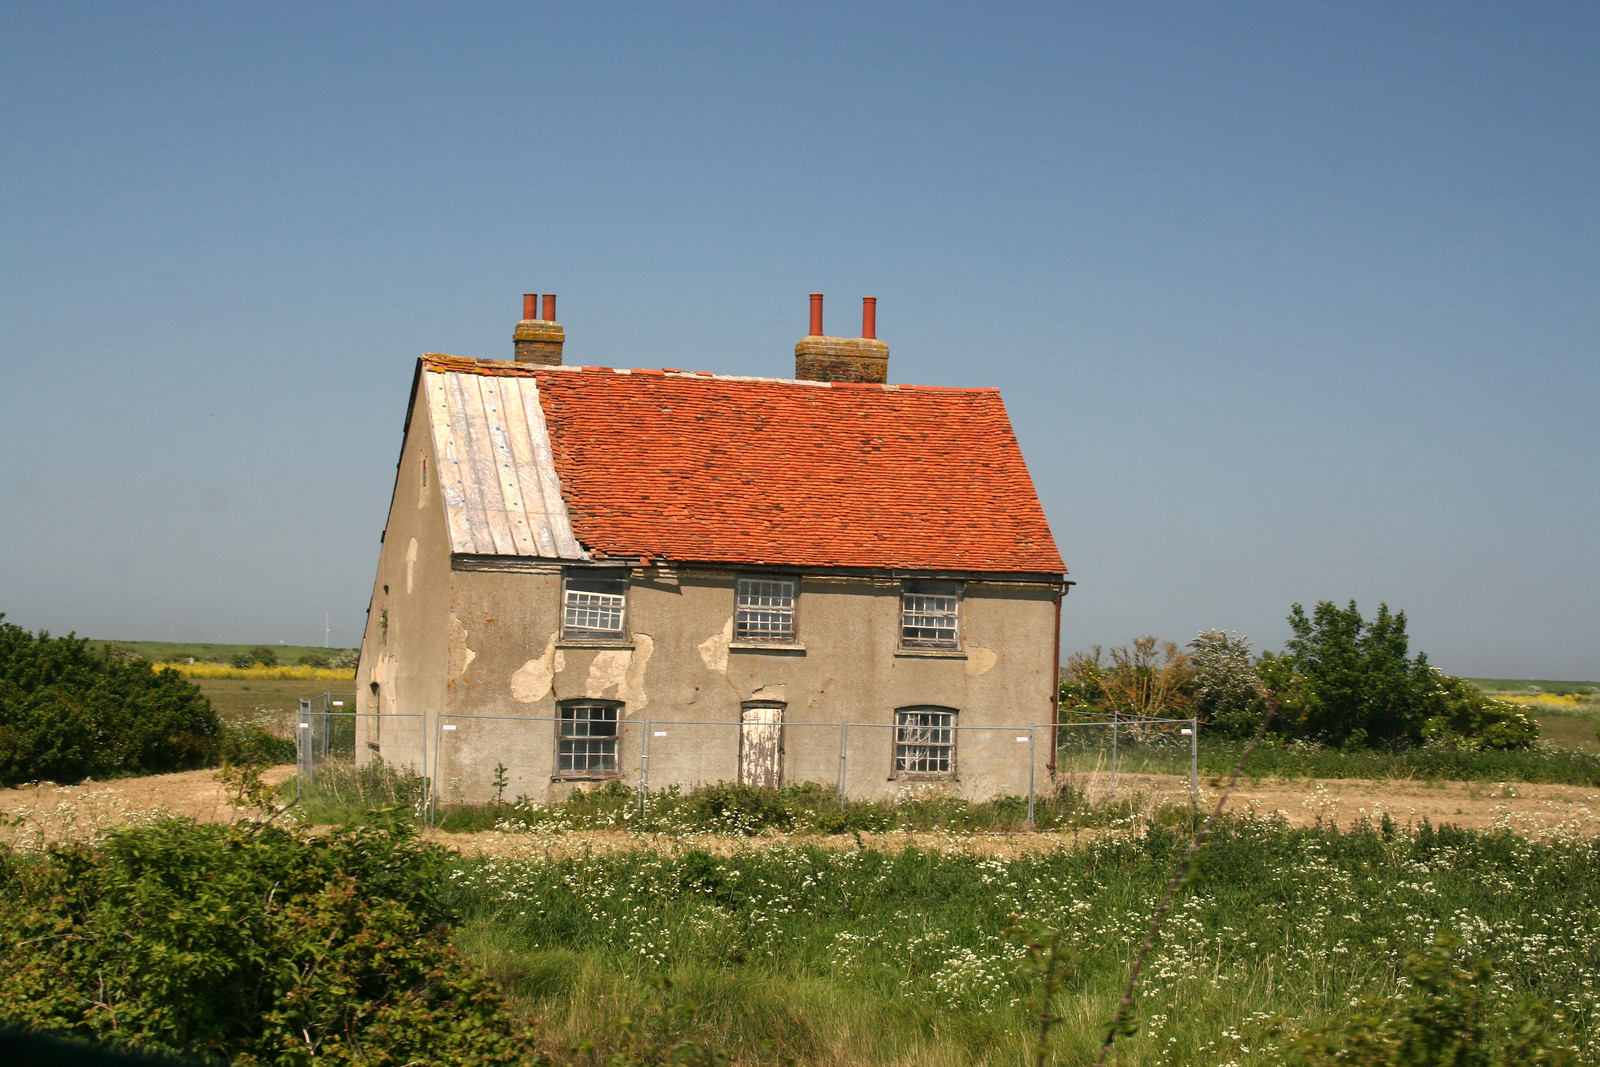 Oldest brick house on Foulness Island Although it has seen better day! The building is Grade II listed.